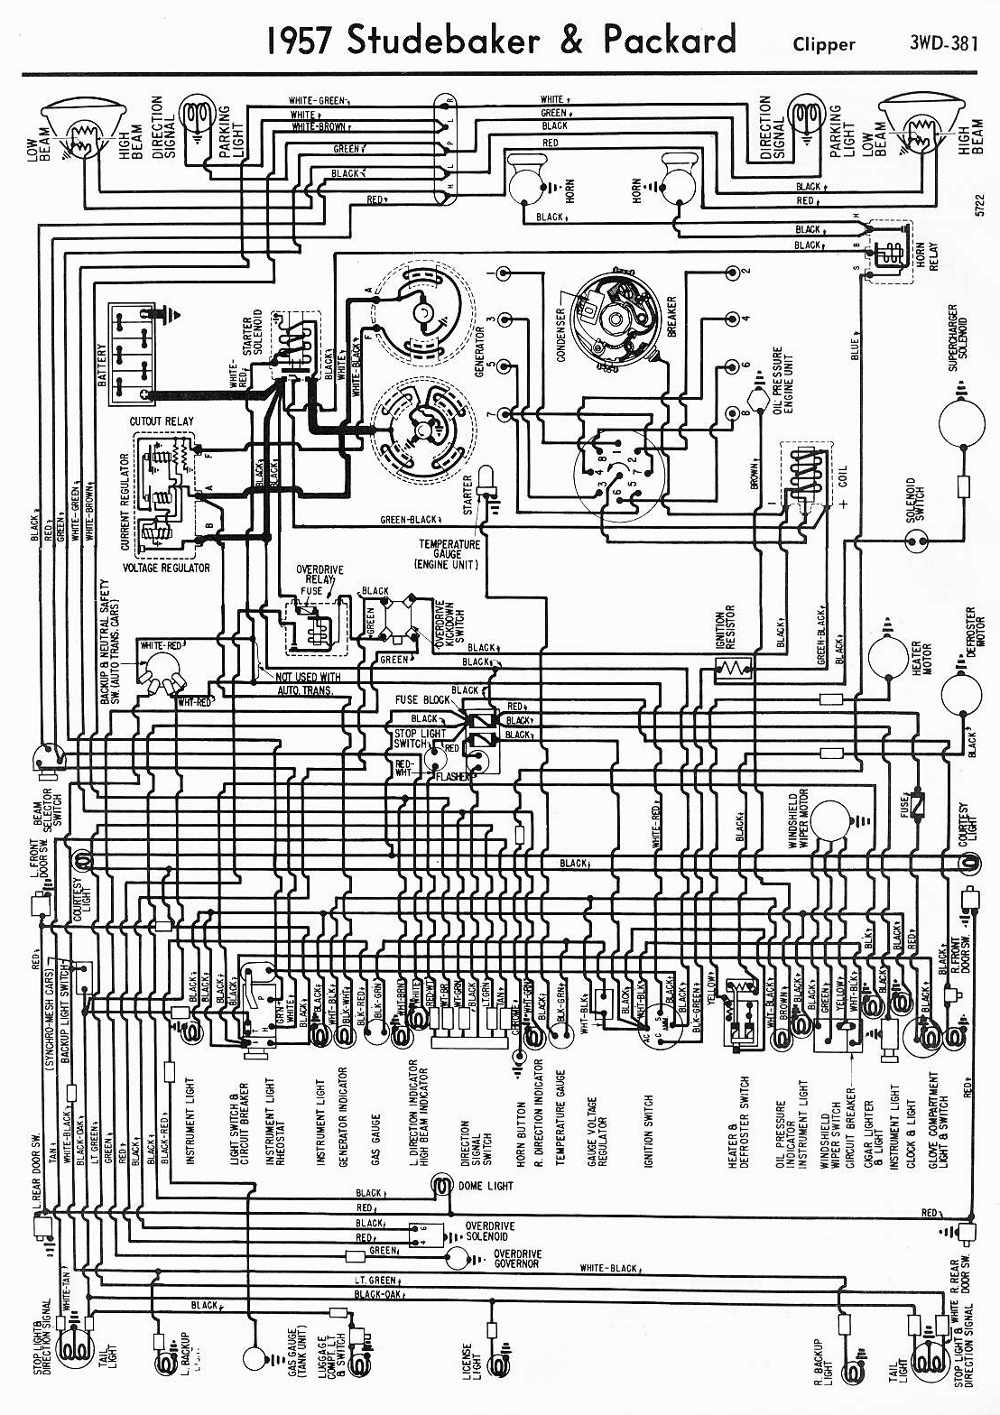 wire harness diagrams drawings wiring diagrams 911: december 2011 2004 ford f150 wire harness diagrams #8